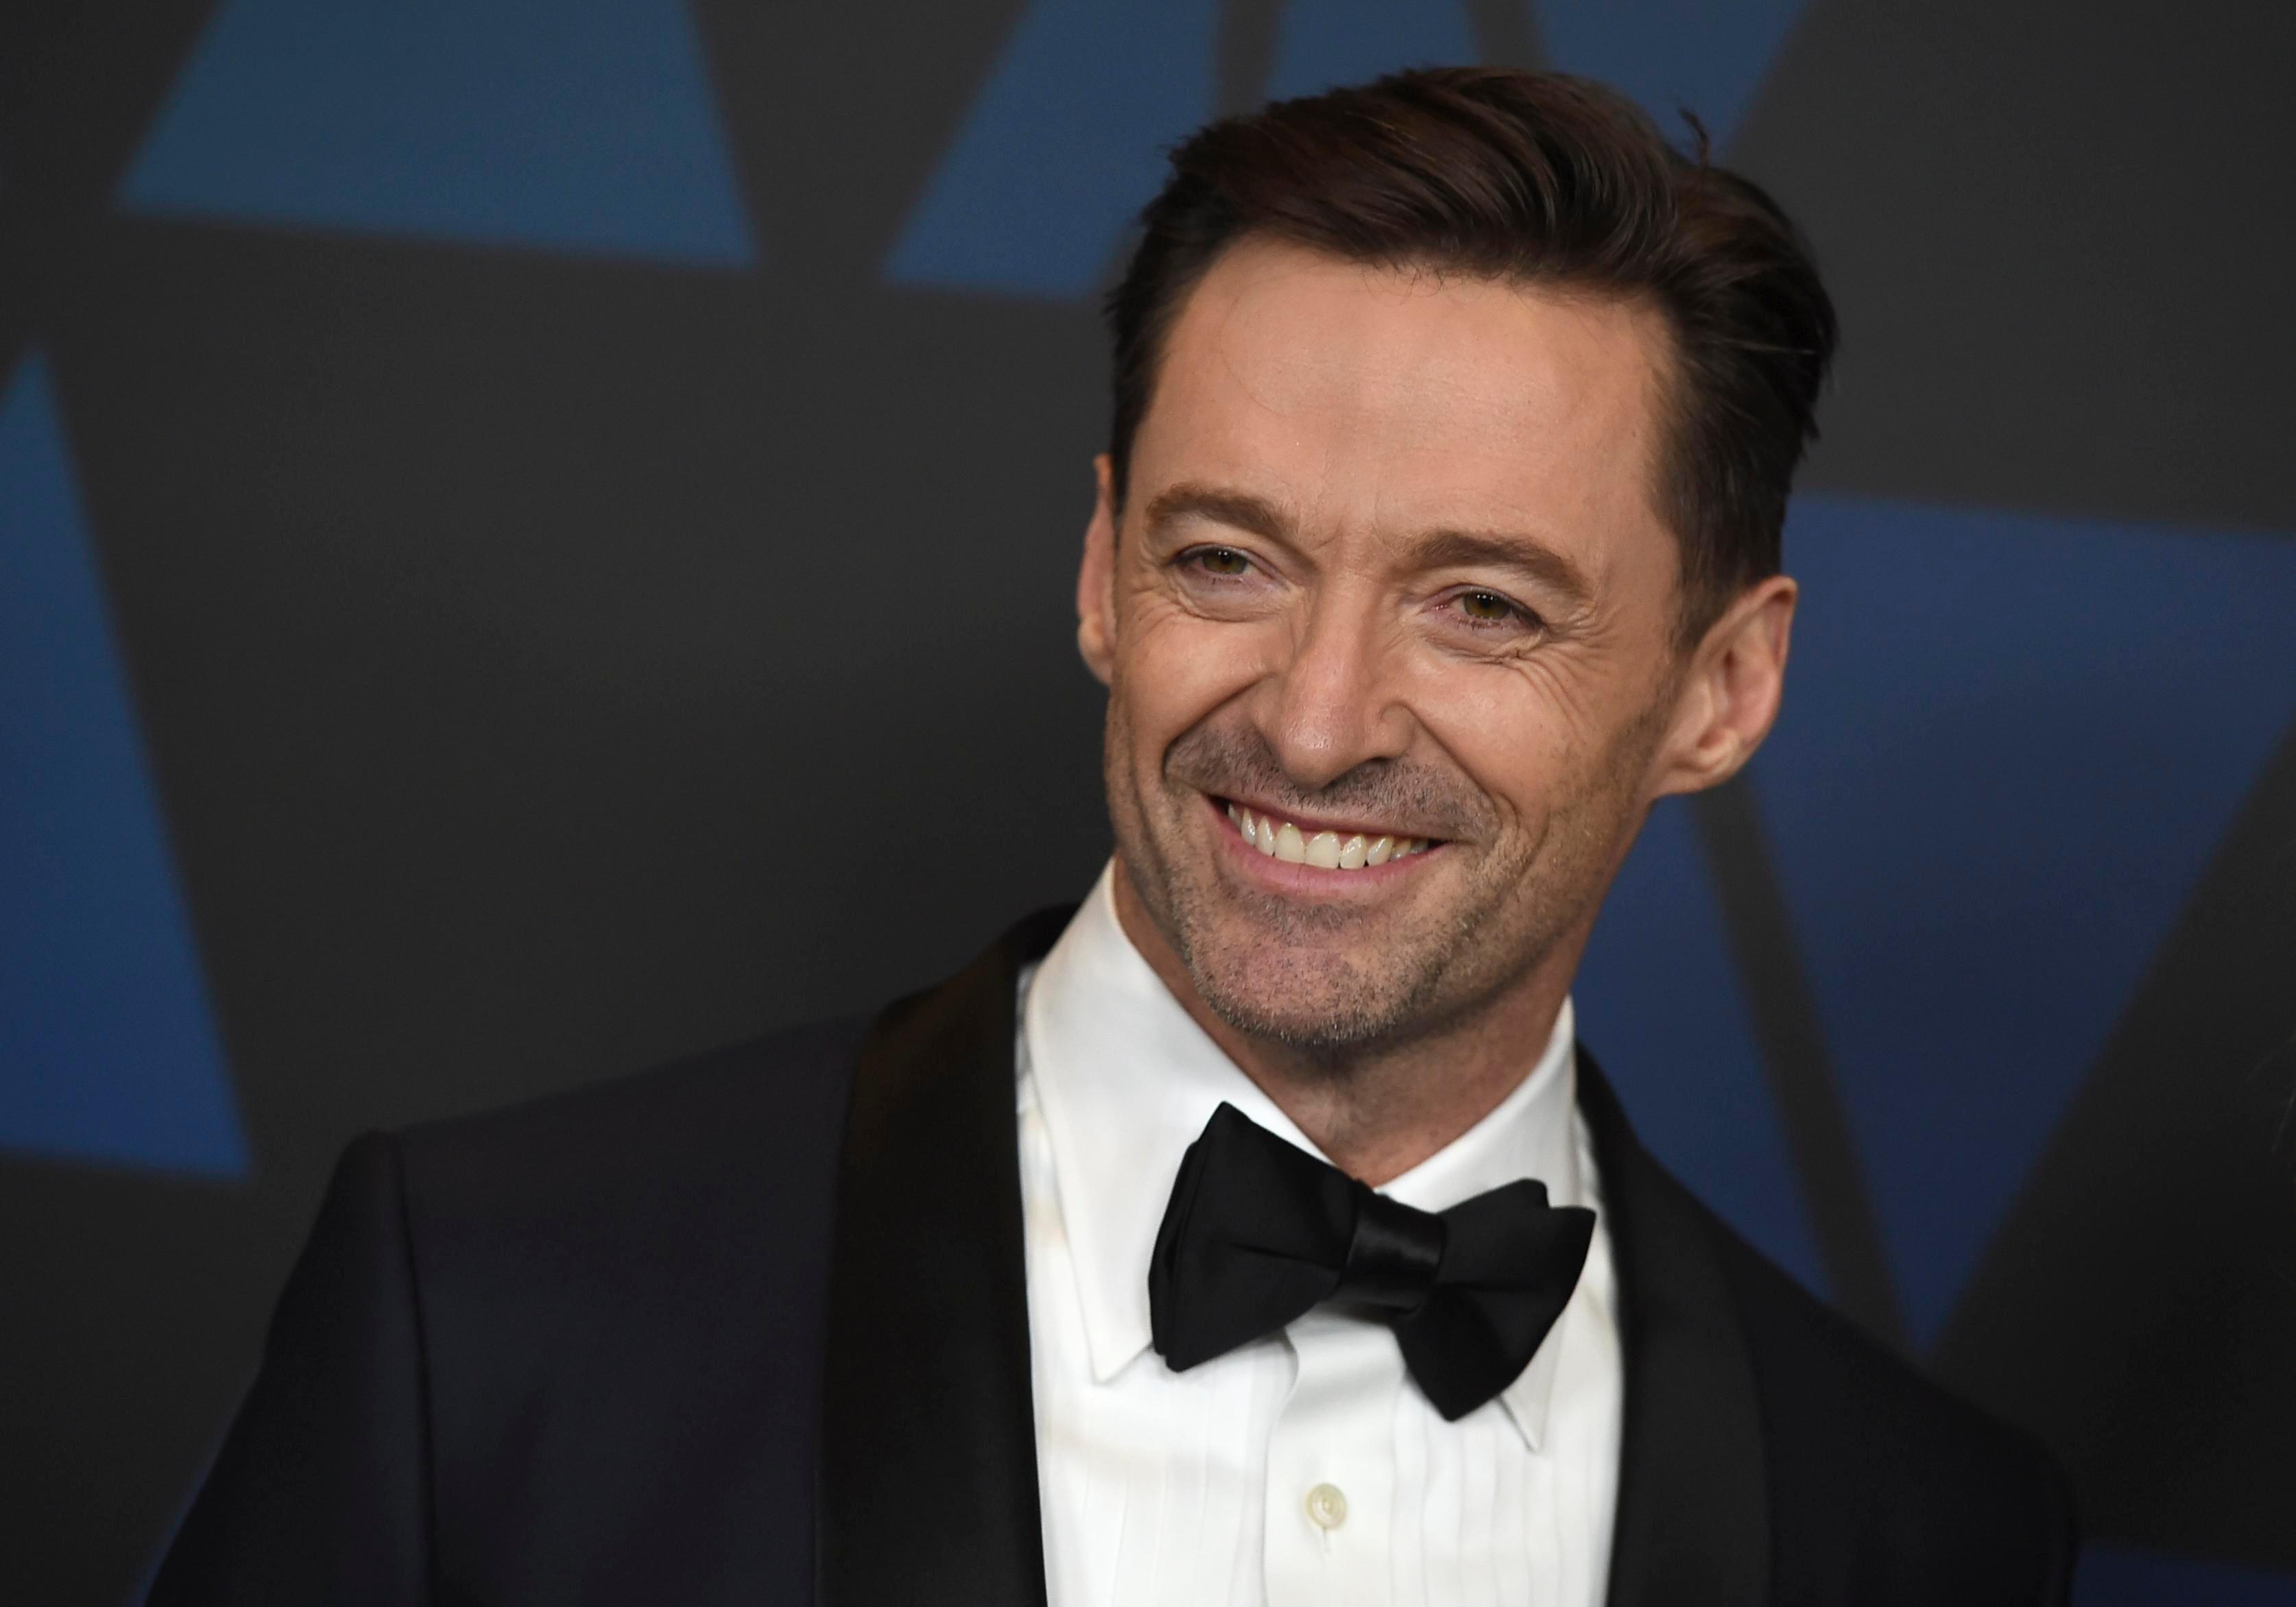 hugh jackman u0026 39 s world tour tickets on sale now  are there